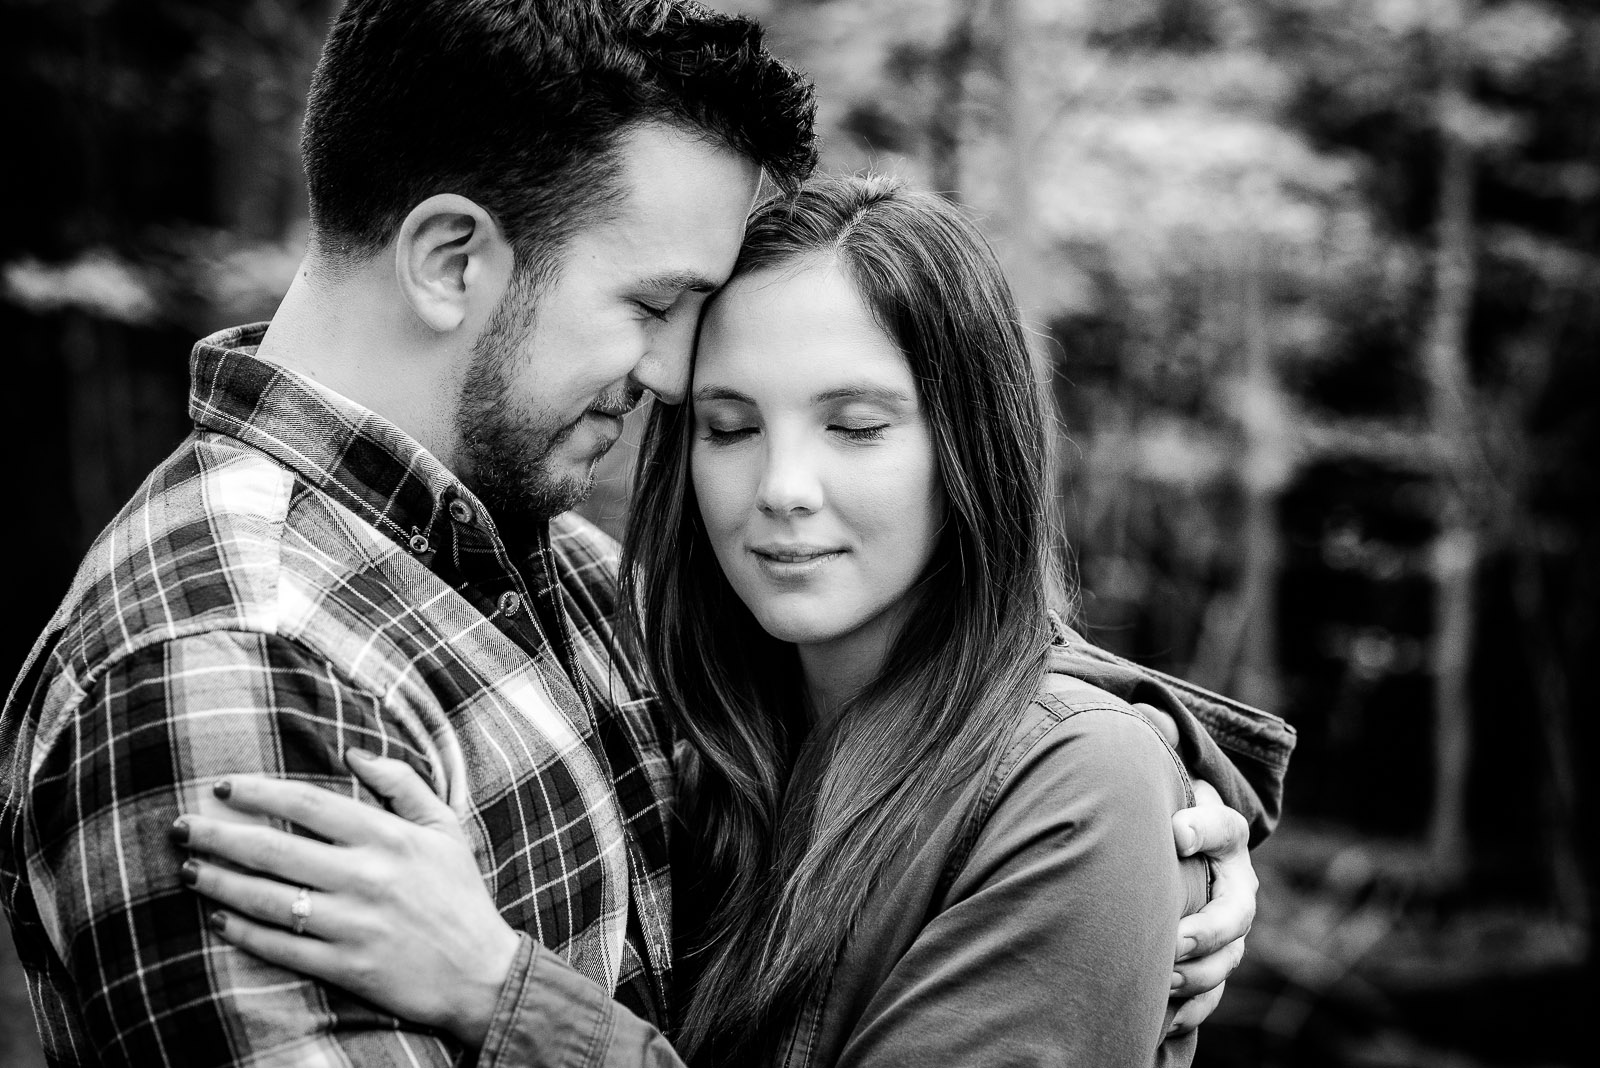 Eric_and_Christy_Photography_Blog_2017_Best_Engagement-20